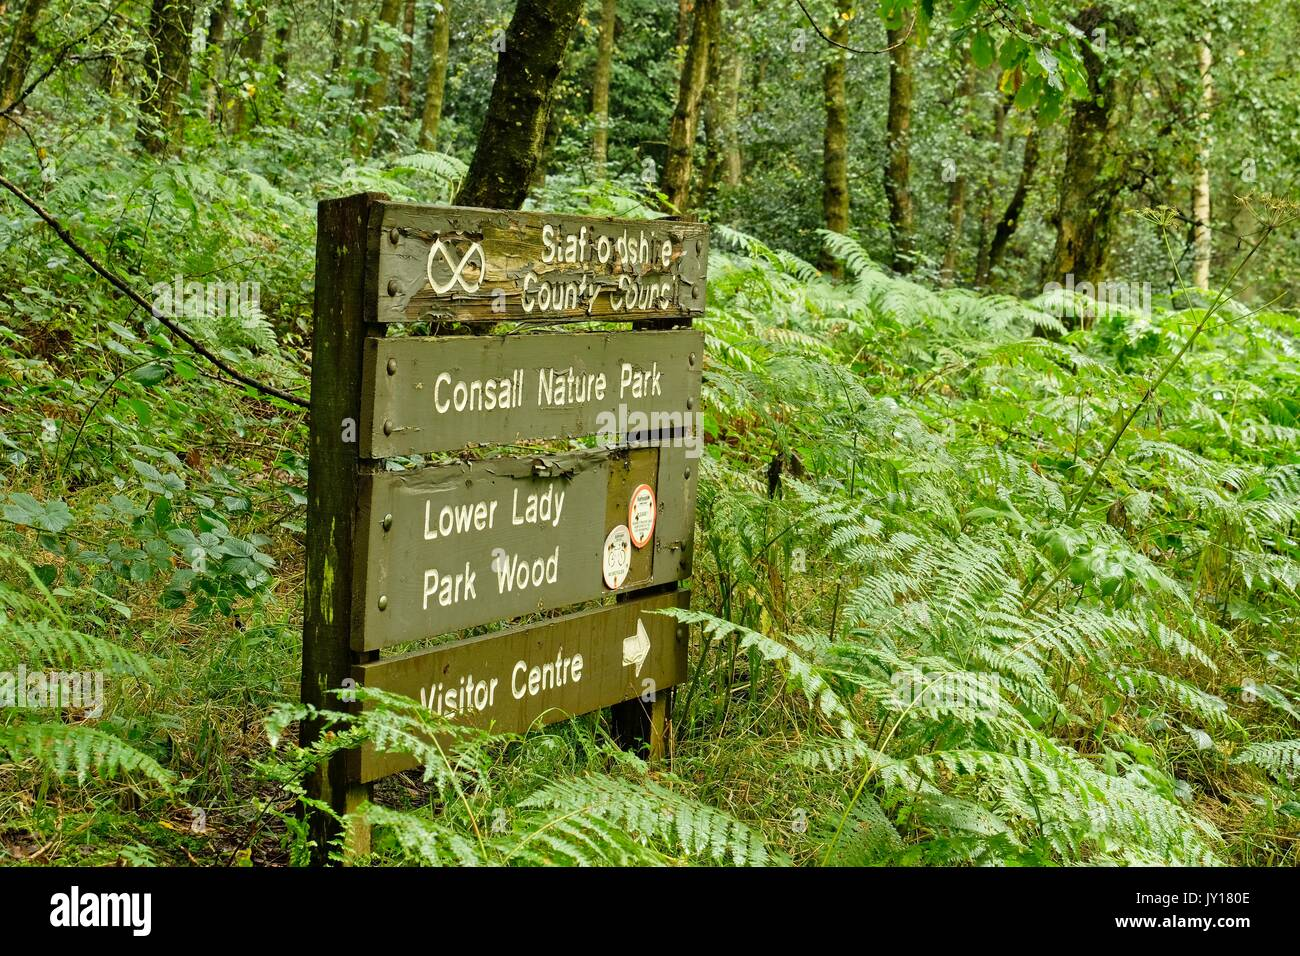 Consall Nature Park - Stock Image